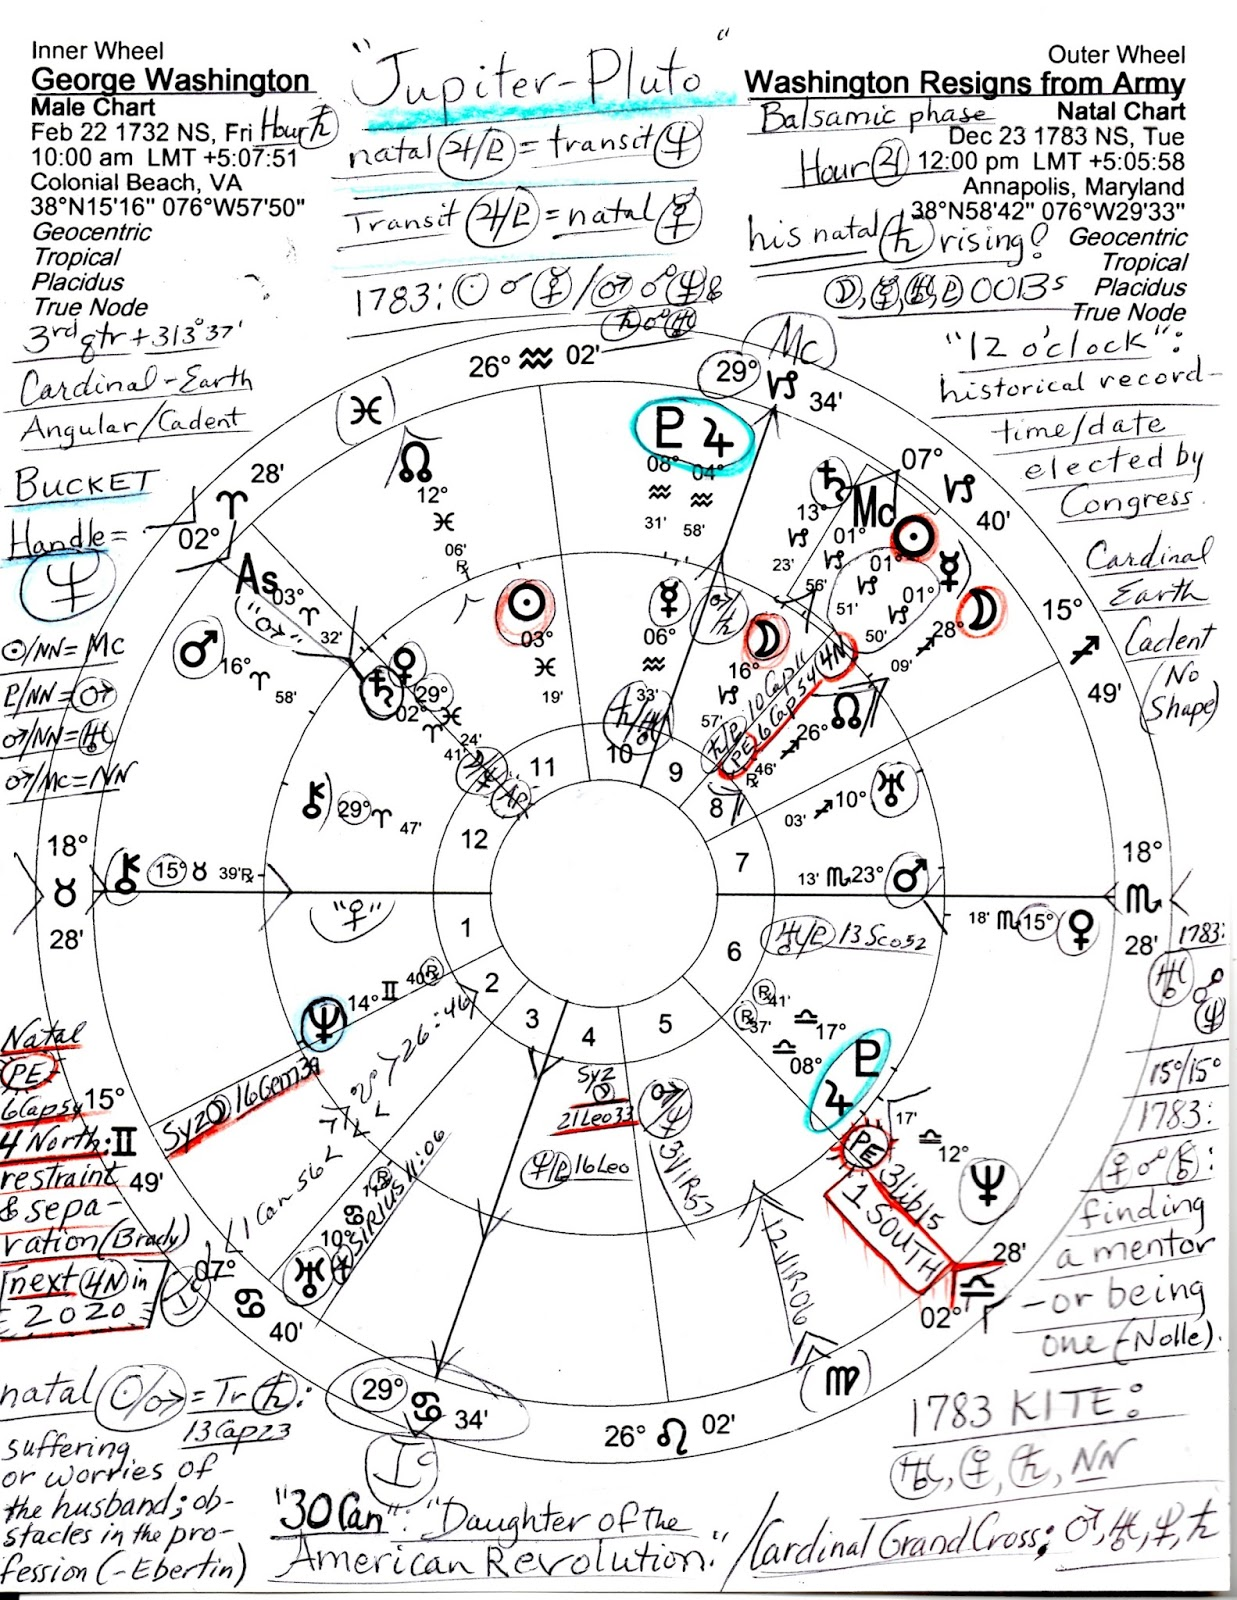 Stars over washington november 2017 with a curious synchronicity jupiter and pluto were in process of conjoining at his resignation and echoed washingtons natal jupiter pluto conjunction nvjuhfo Choice Image